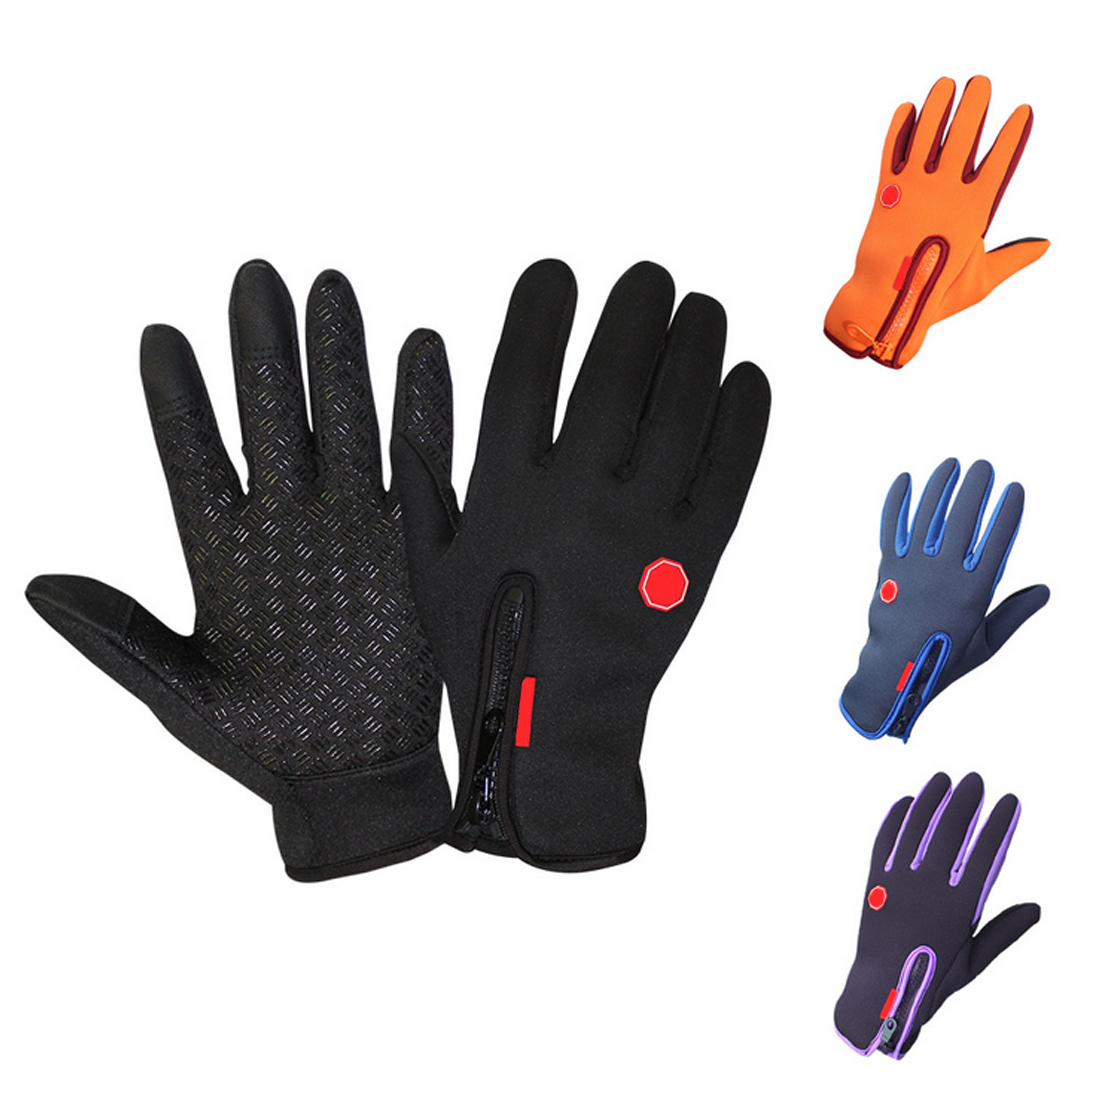 CAR-partment New Motorcycle Gloves Windstopper Full Finger Ski Gloves Warm Riding Glove Outdoor Sports S M L XL Size scoyco a012 xl sporty full finger motorcycle gloves black red pair size xl